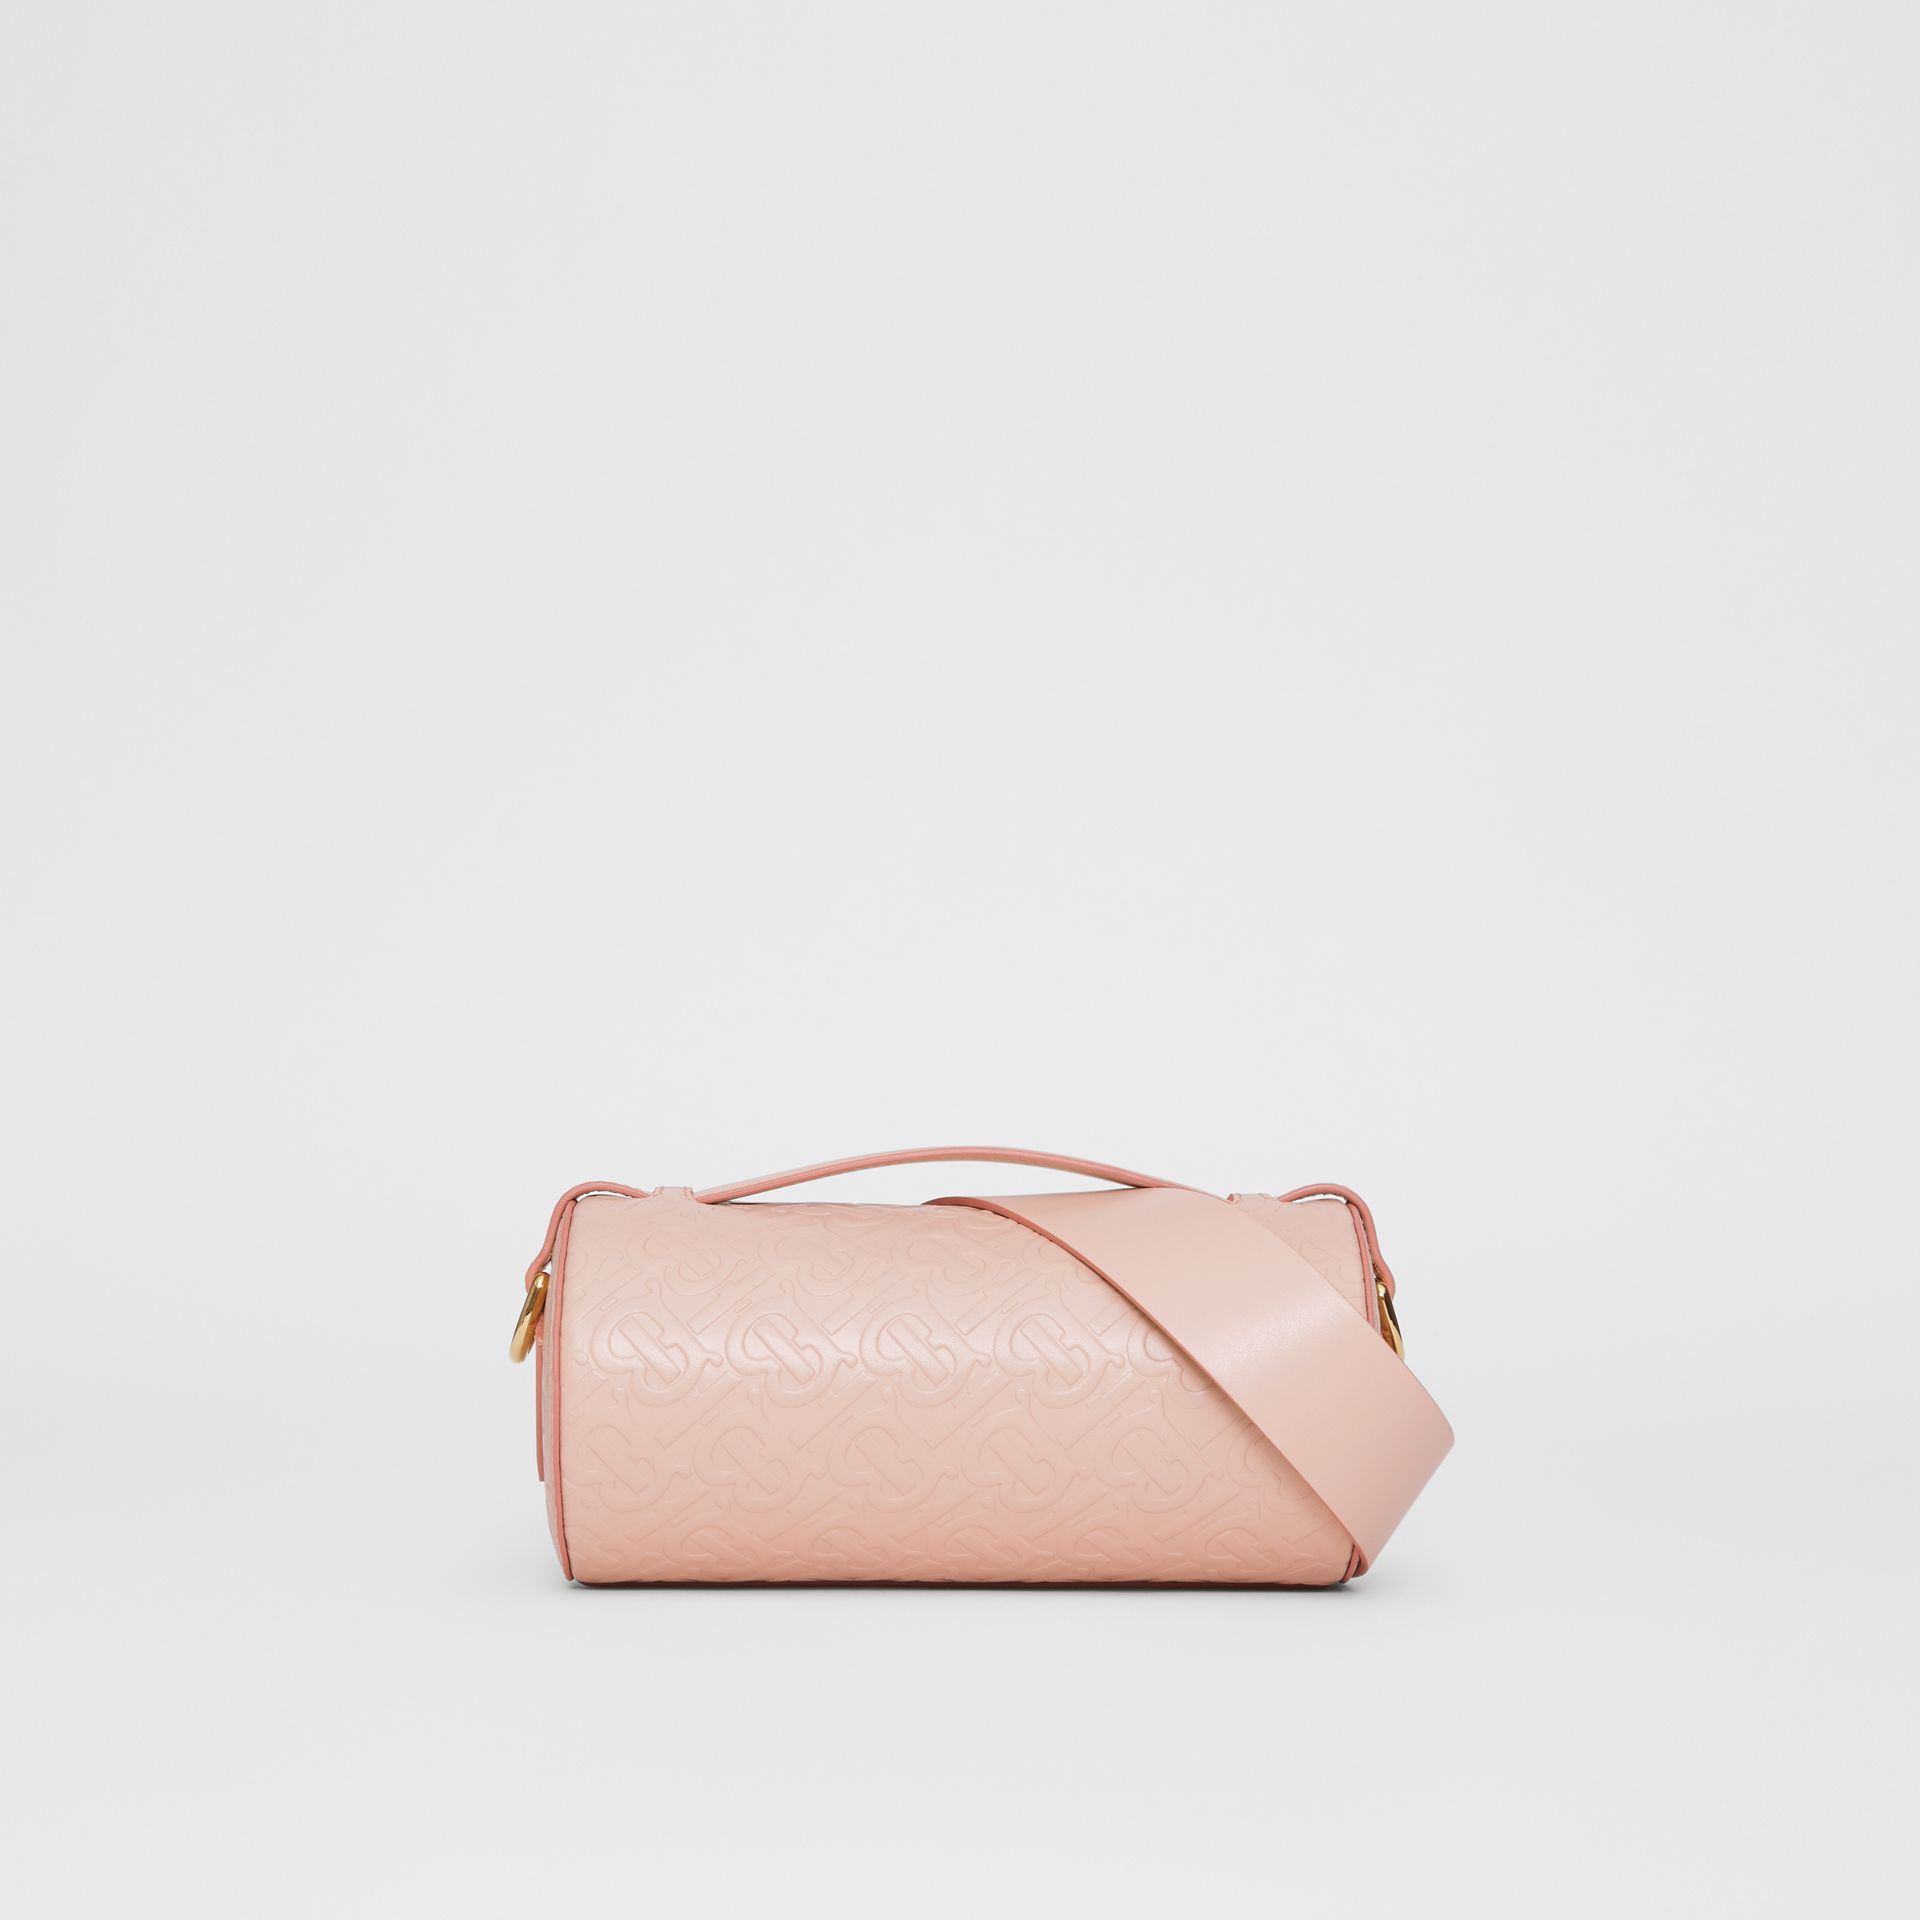 Sac The Barrel en cuir Monogram (Beige Rose) - Femme | Burberry - photo de la galerie 7